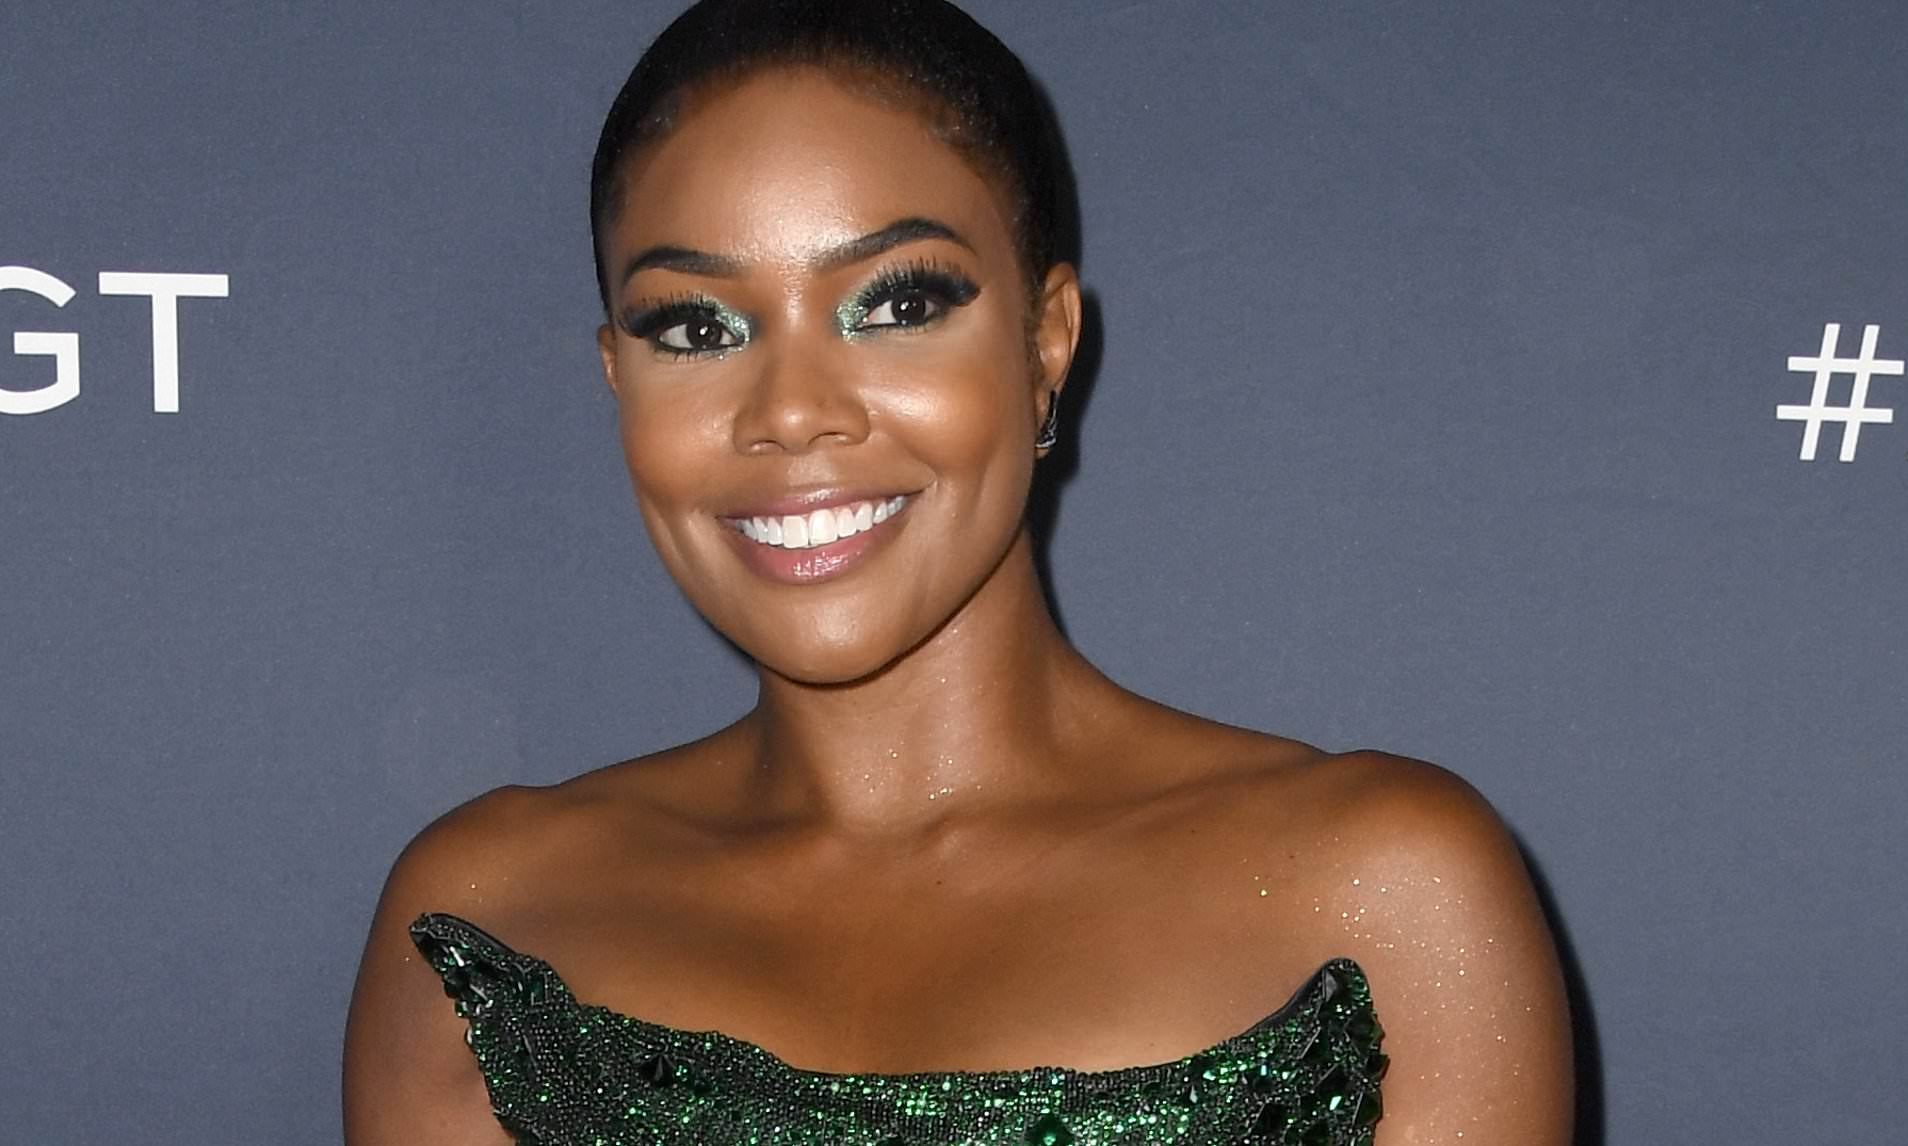 Gabrielle Union Drops An Important Message About Working Moms – Read It Here